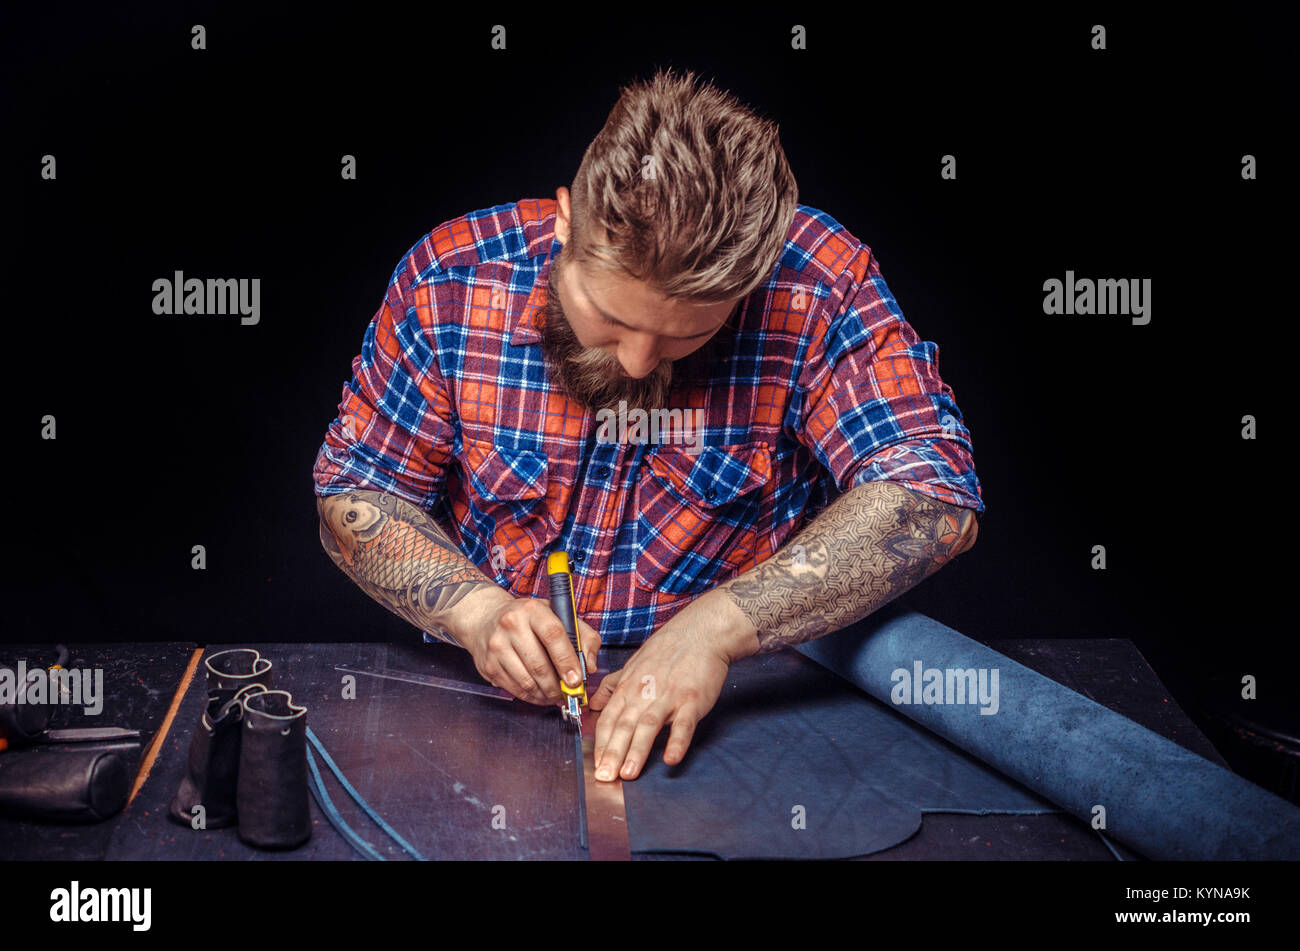 Craftsman performing leatherwork on a new product piece in the workplace - Stock Image